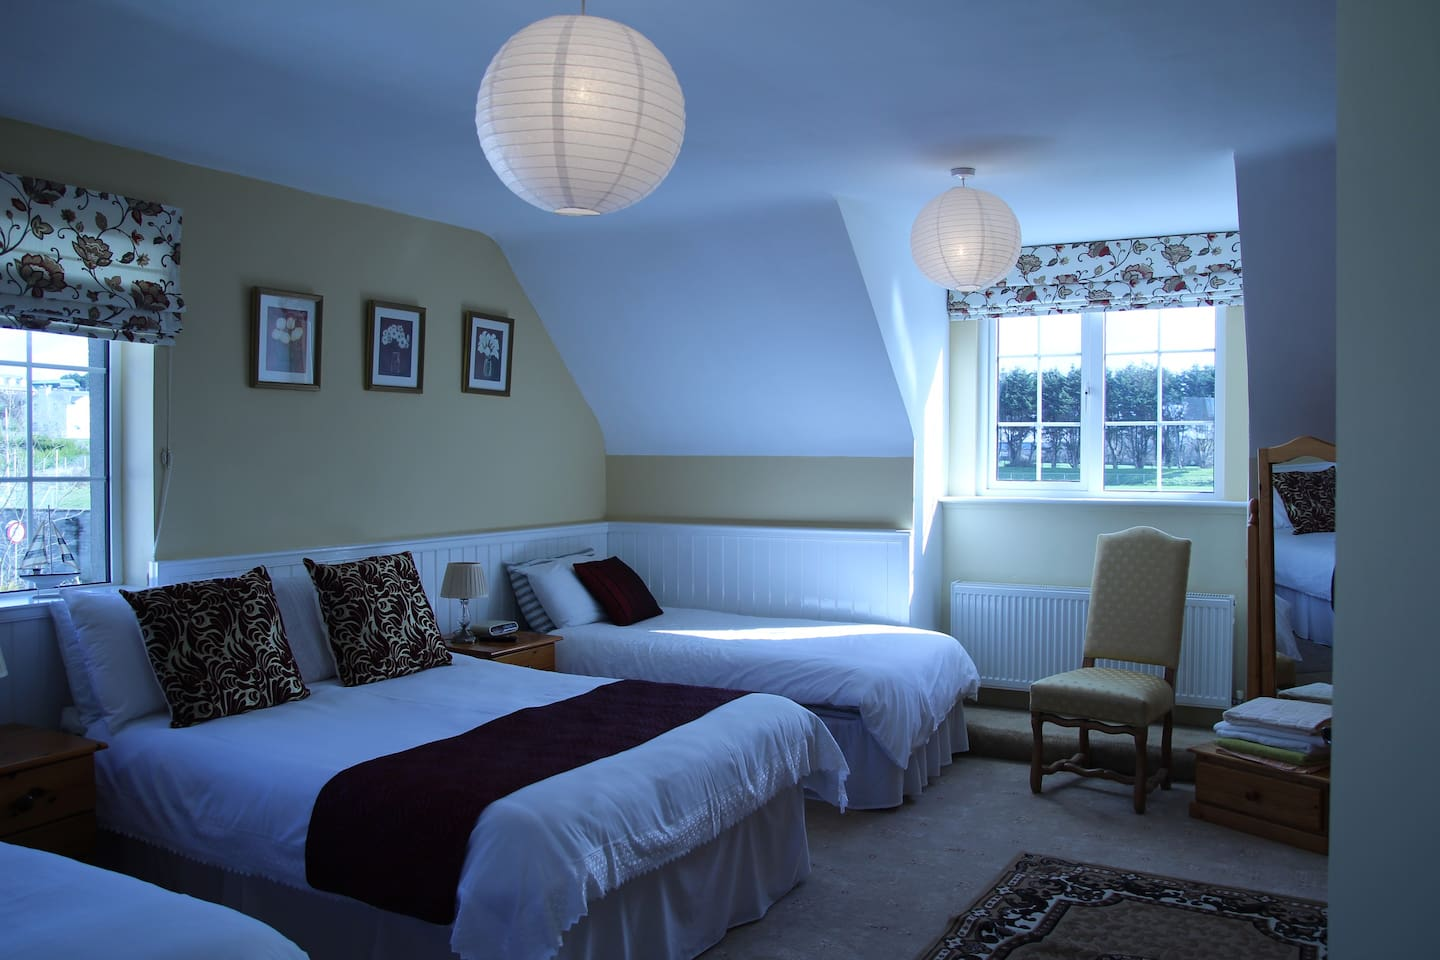 Family room contains 1 double bed and 3 singles plus private bathroom.